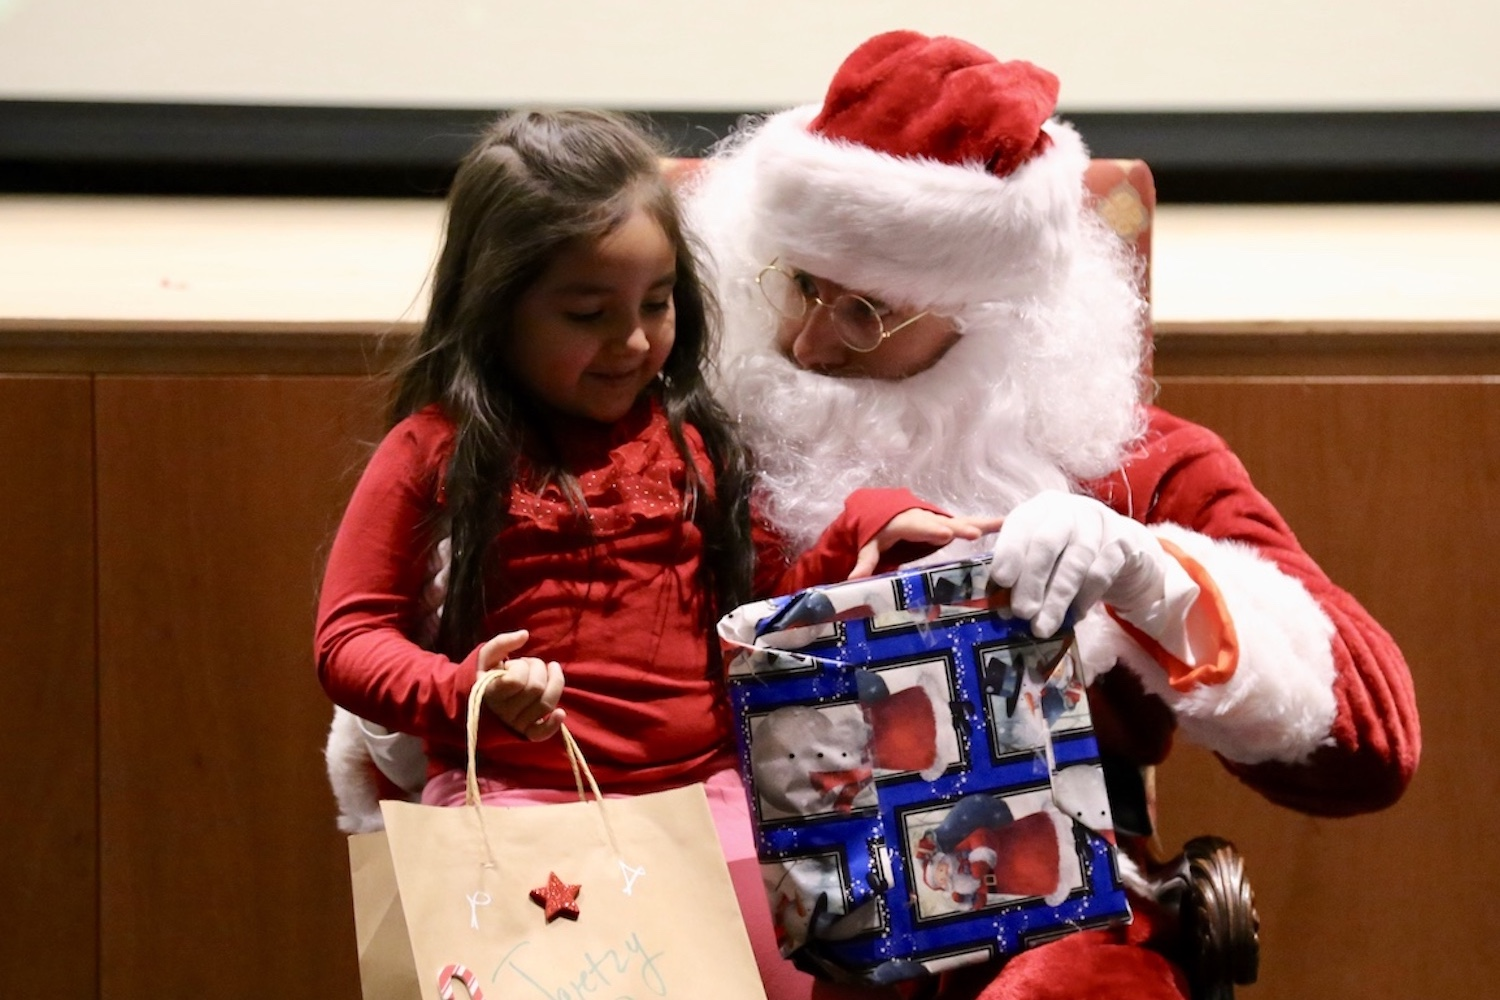 Children from the Carver Center came to Sacred Heart in 2017 to receive student-donated presents from Santa Claus.